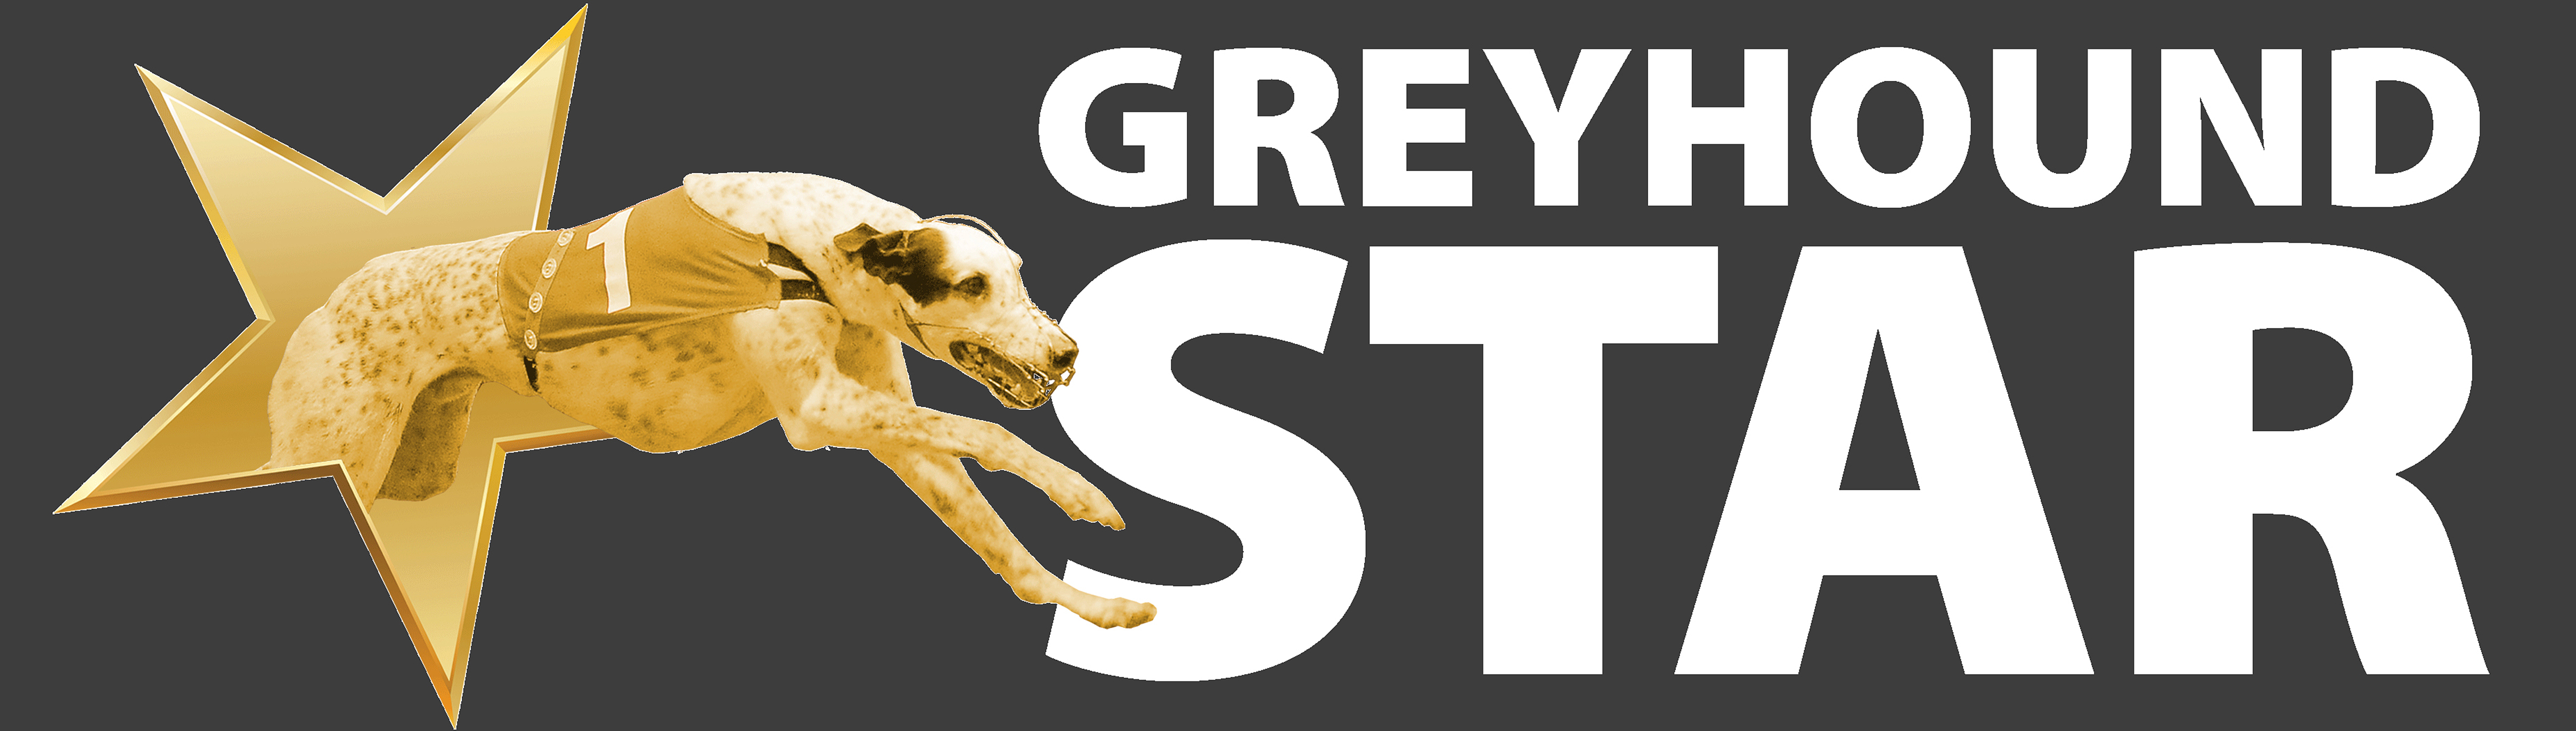 DON'T FORGET TO DOWNLOAD THE APP - Greyhound Star | News ...